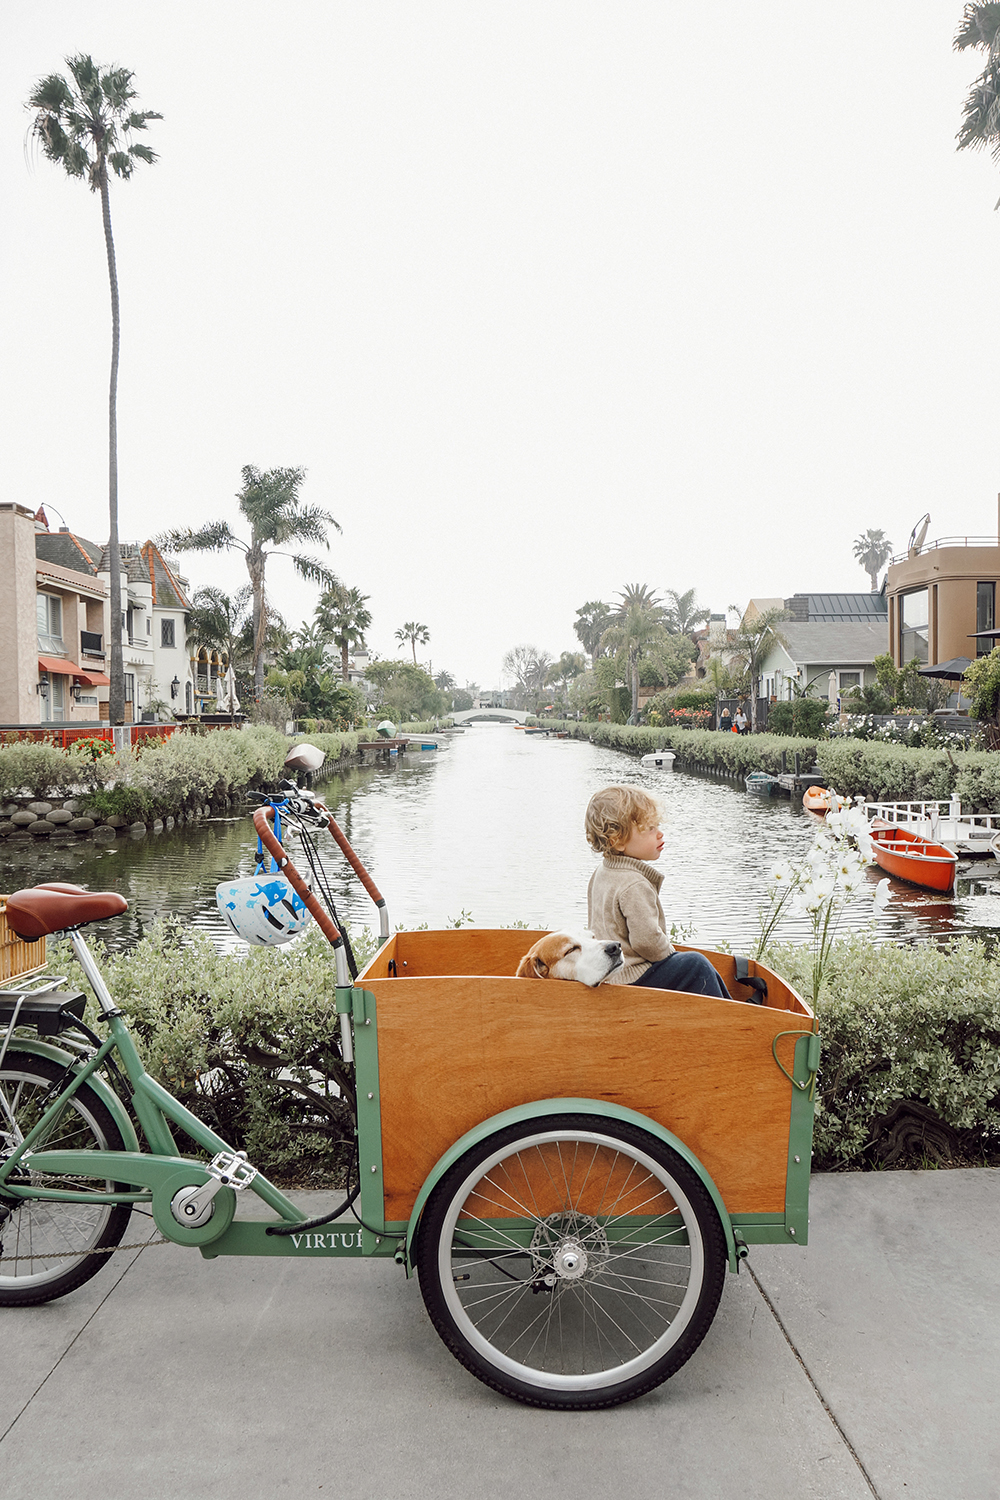 stanlee and west in cargo bike canals april 2018.jpg